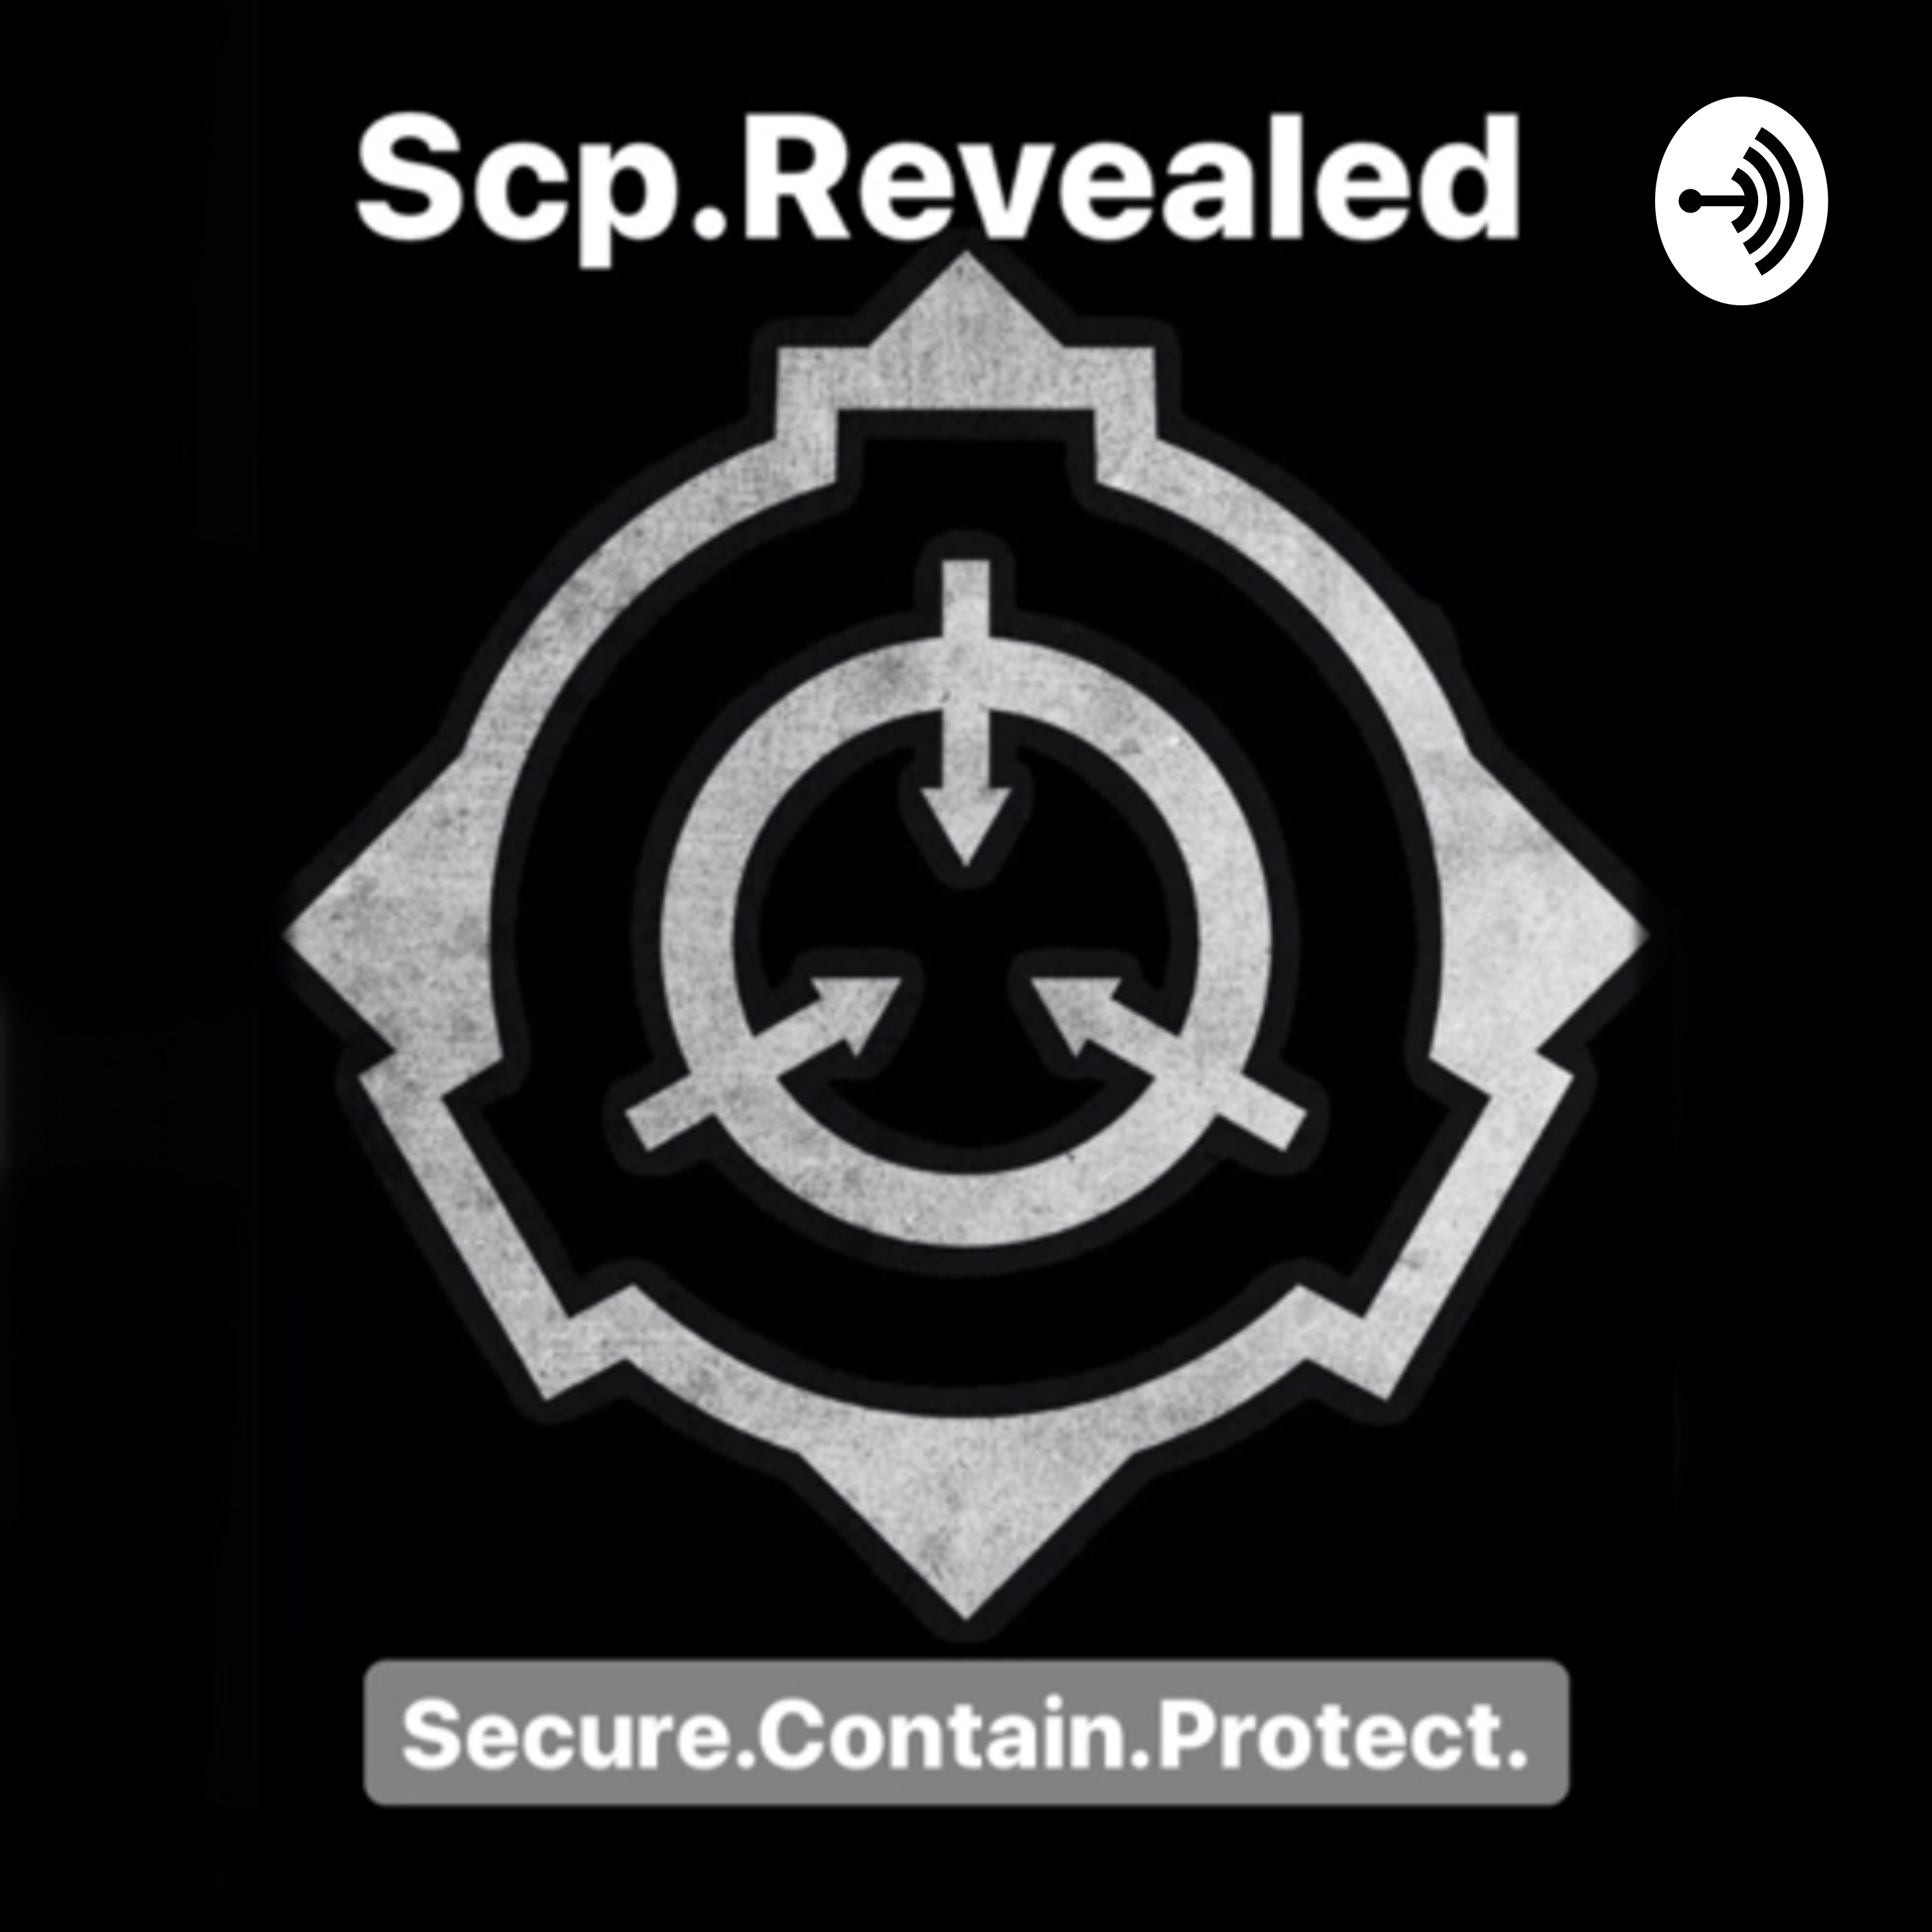 Scp 3209 Boredom Butterflies Object Class Euclid Scp Revealed Podcast Podtail The users of the site would rather not ruin the mystery. podtail